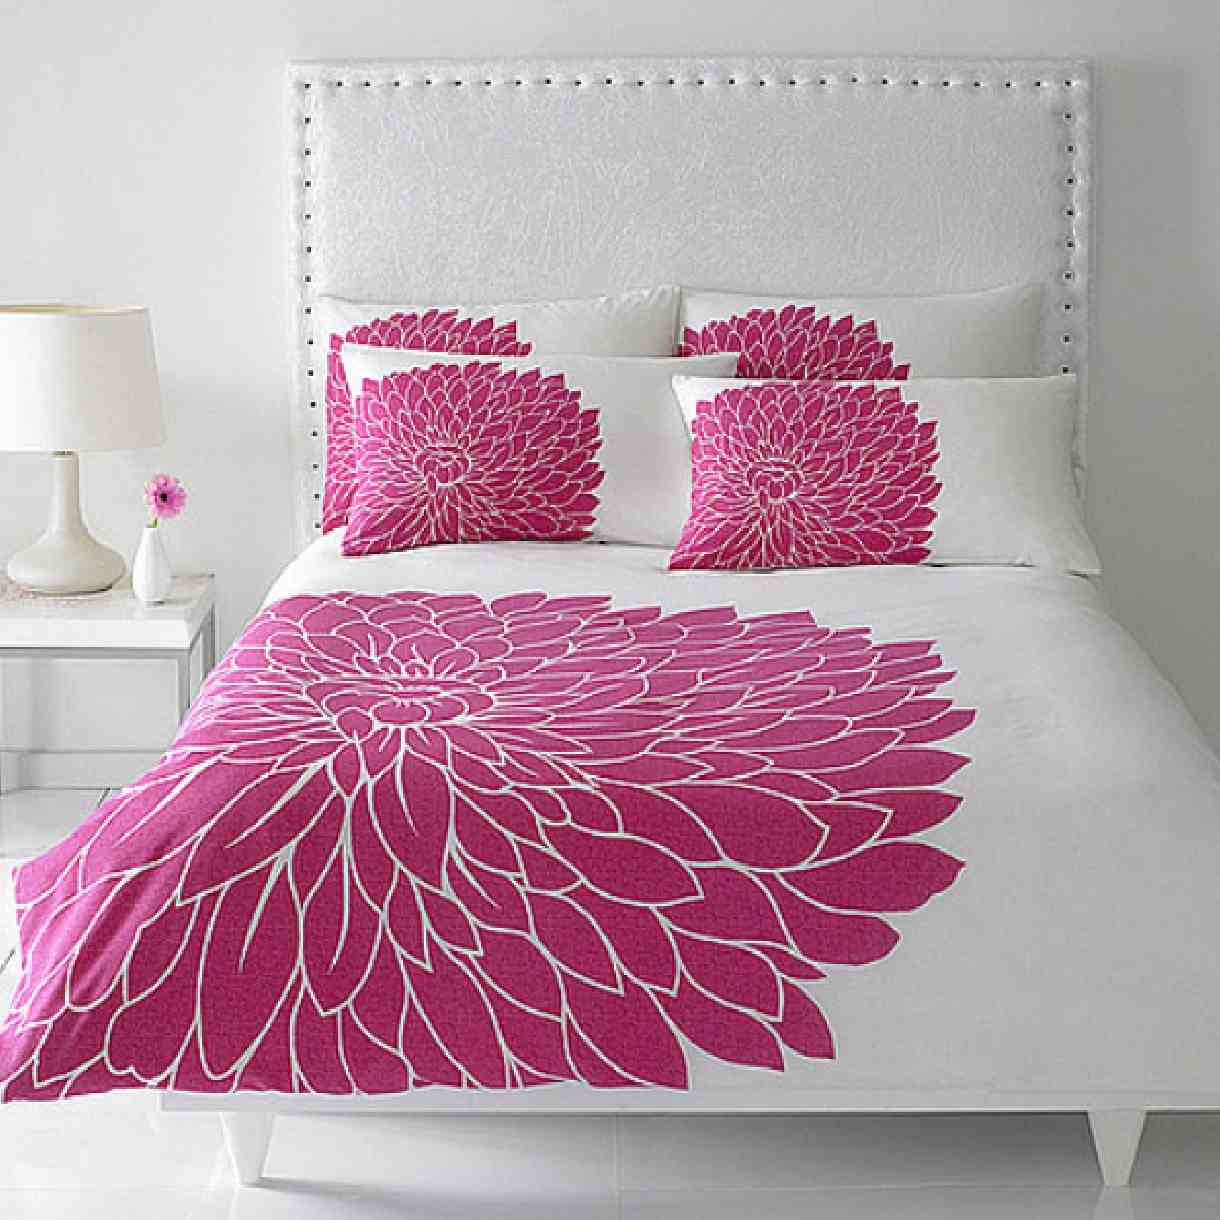 Bedroom Color Schemes Pink Bedroom Interior Design Pictures Duck Egg Blue Bedroom Furniture Simple Bedroom Paint Ideas: Fantastic Decorating Tips With Pink Color